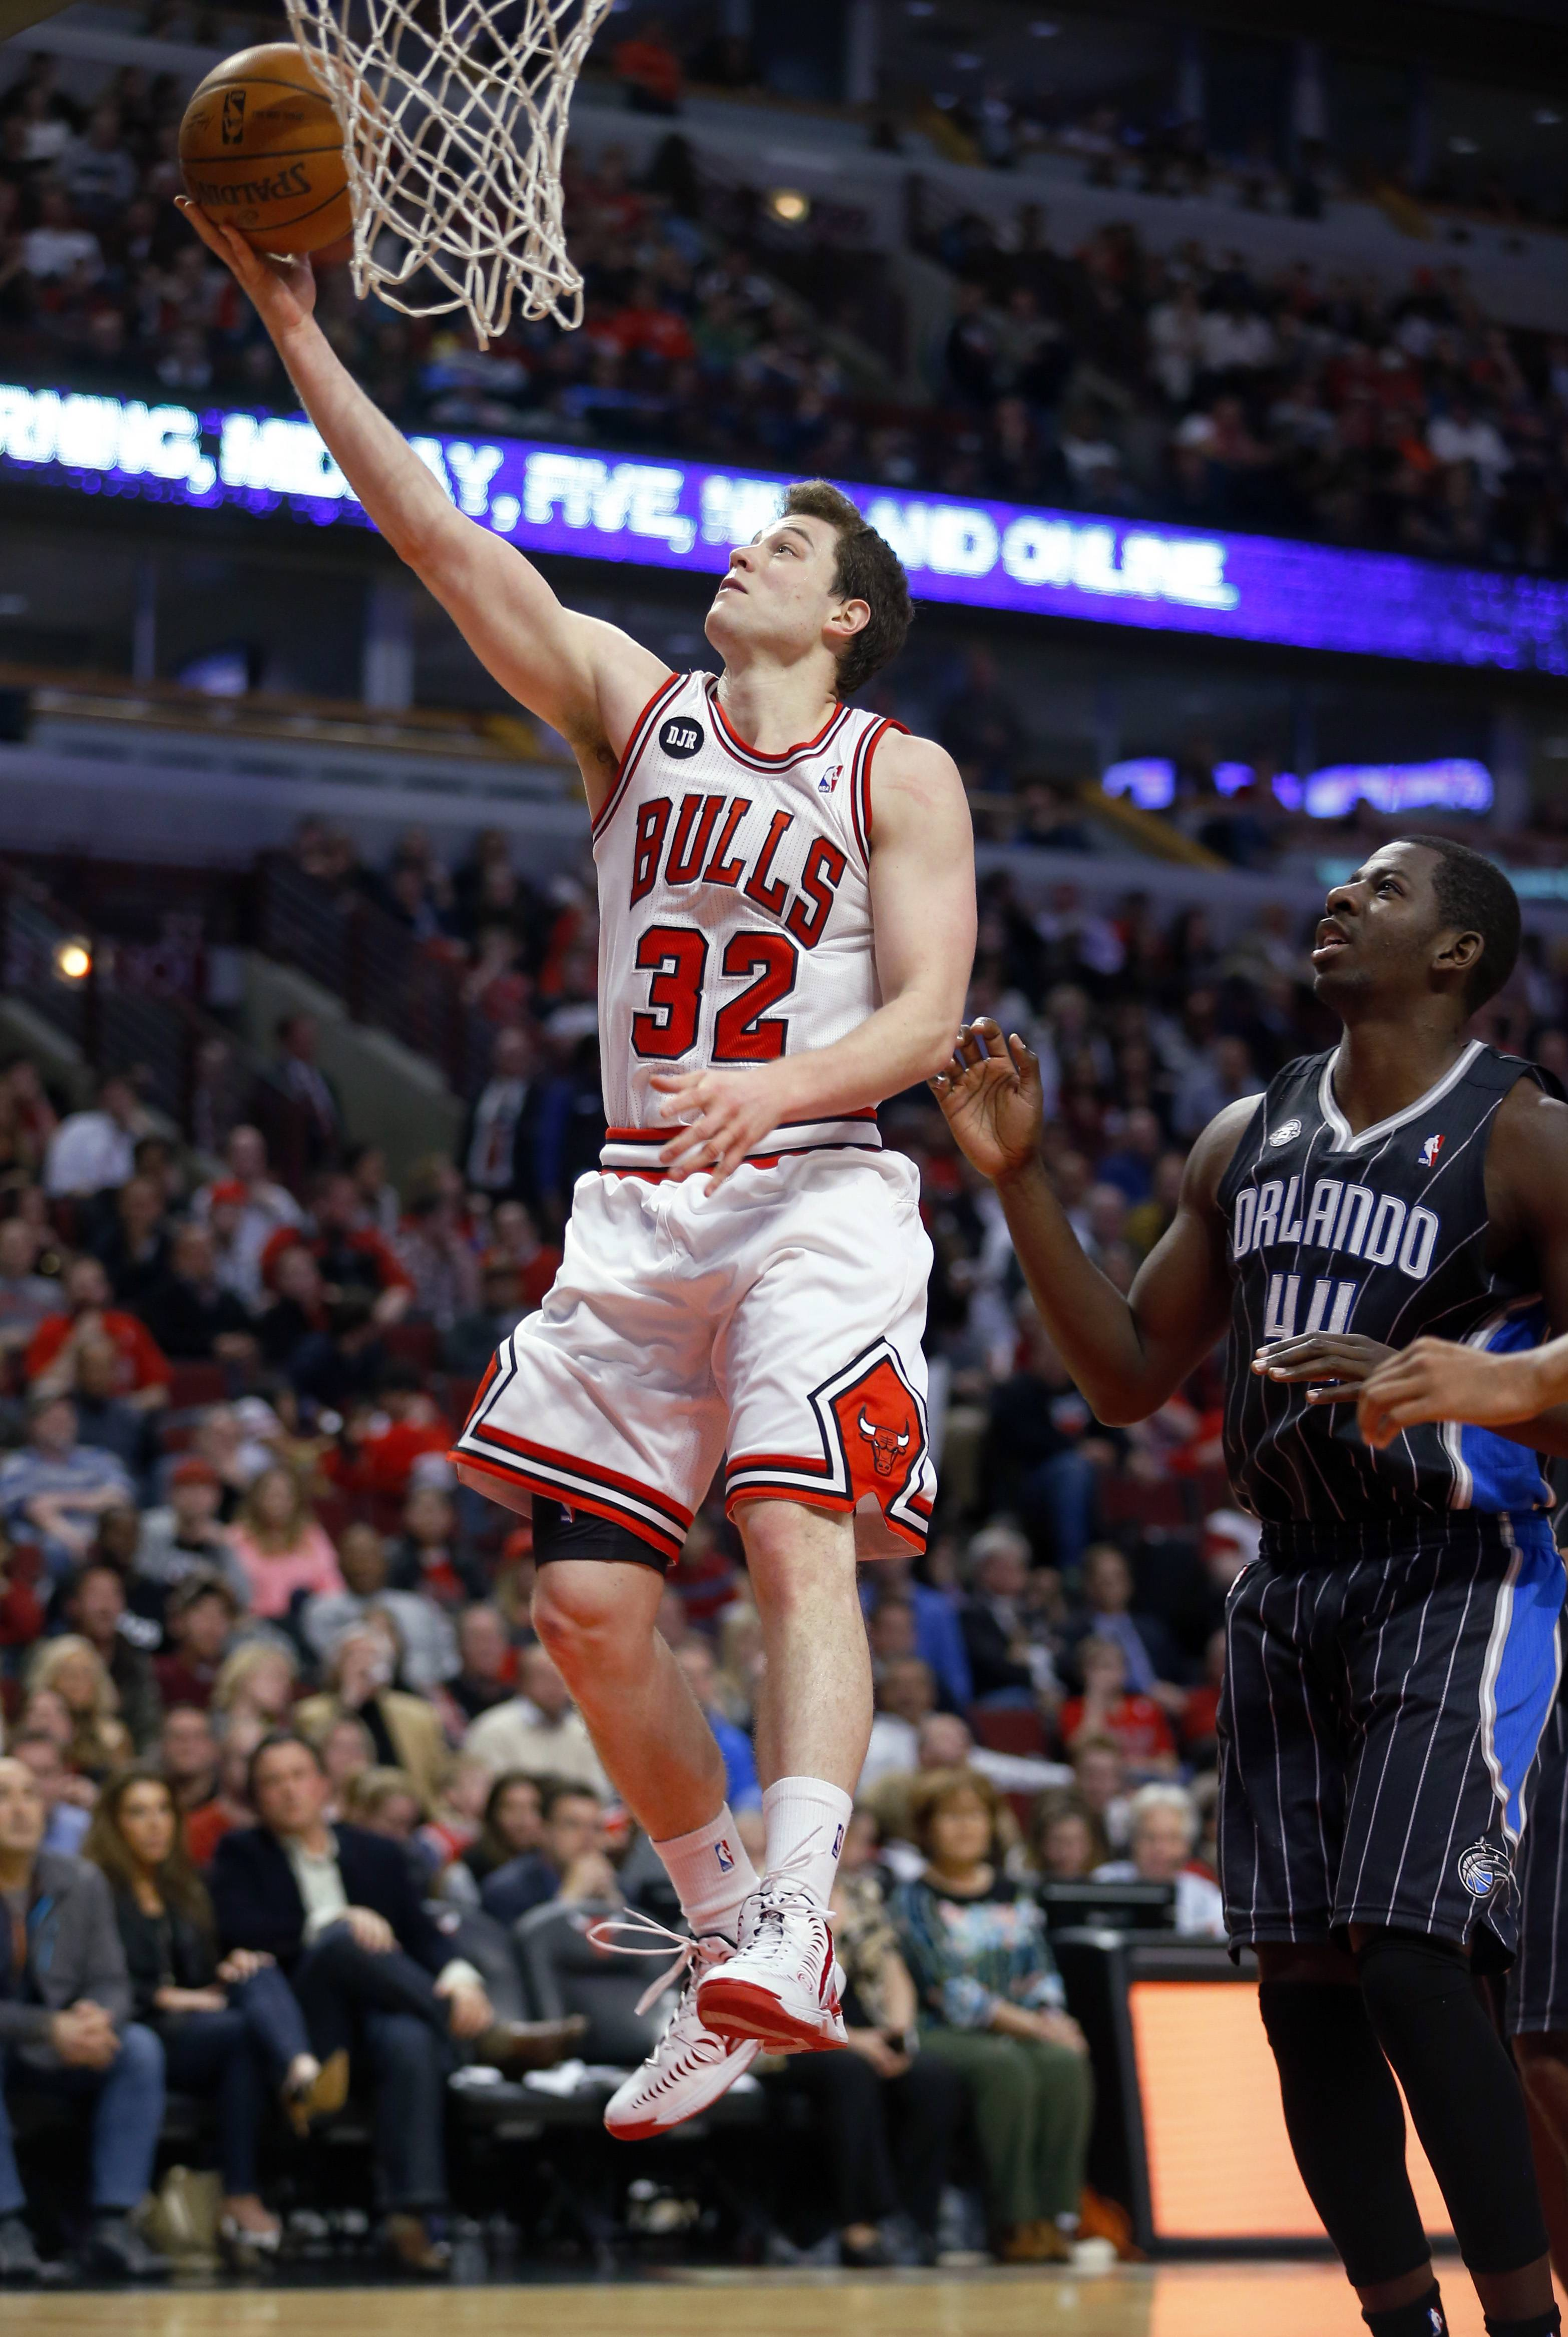 Bulls guard Jimmer Fredette goes in for a layup past Orlando's Andrew Nicholson during the second half Monday night. Fredette played 31 minutes and finished with 17 points.